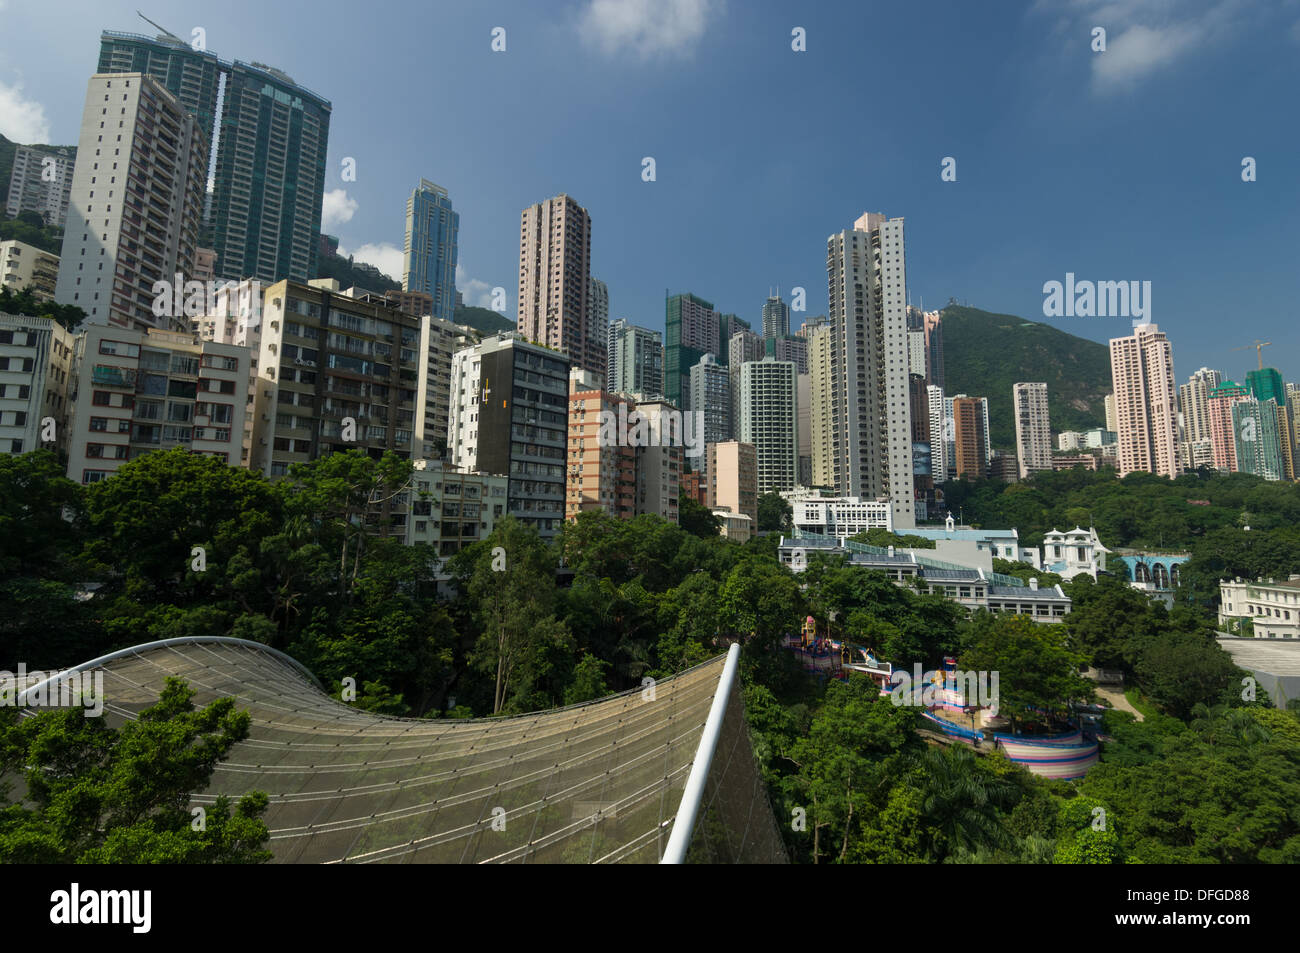 Looking Down Onto The Hong Kong Zoological And Botanical Gardens Stock Photo 61212600 Alamy